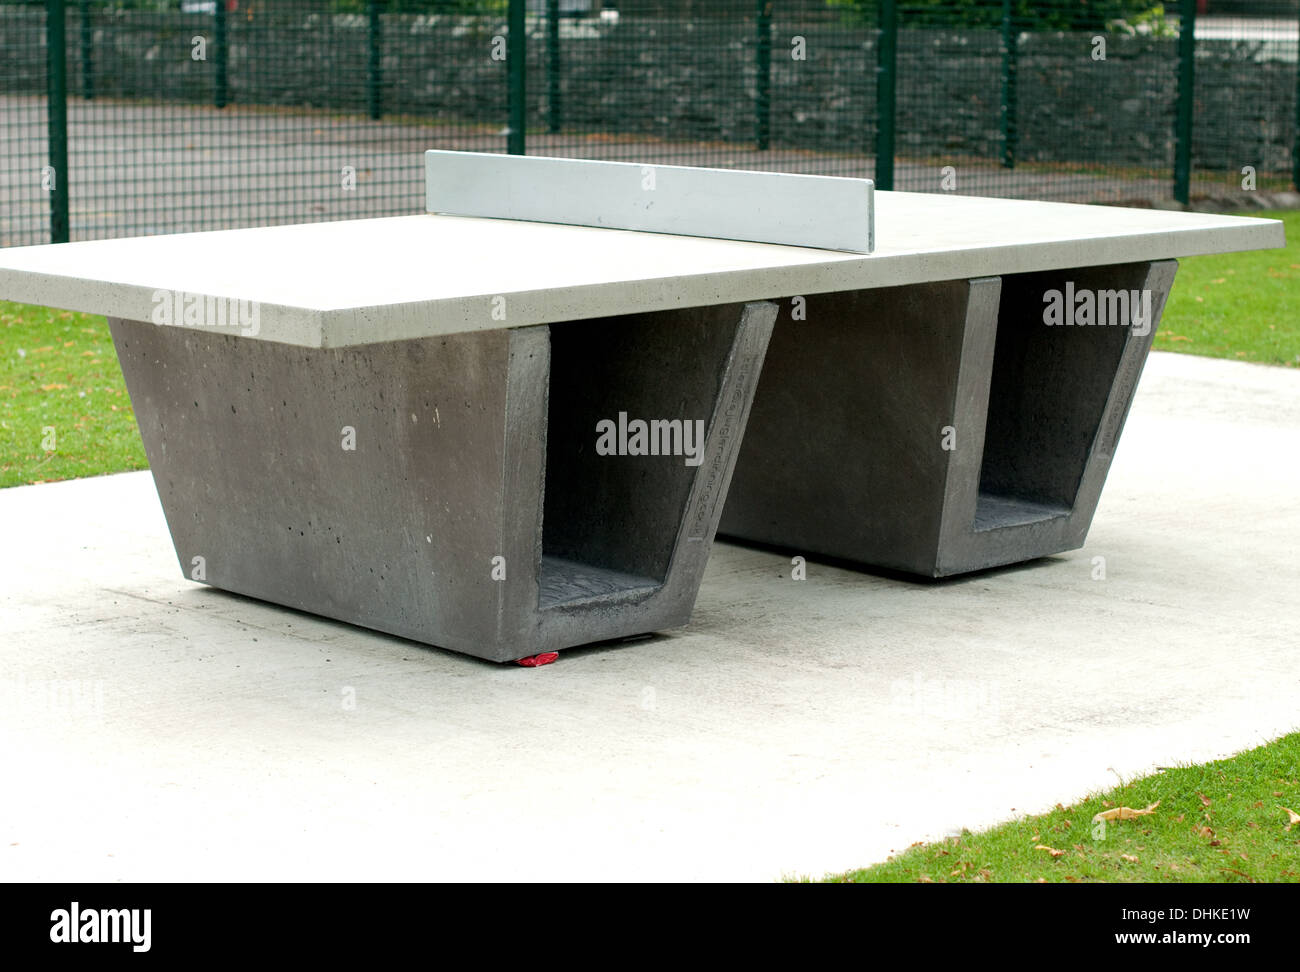 industrial style outdoor furniture. Image Of An Outdoor Table Tennis Made From Industrial Style Concrete Furniture A